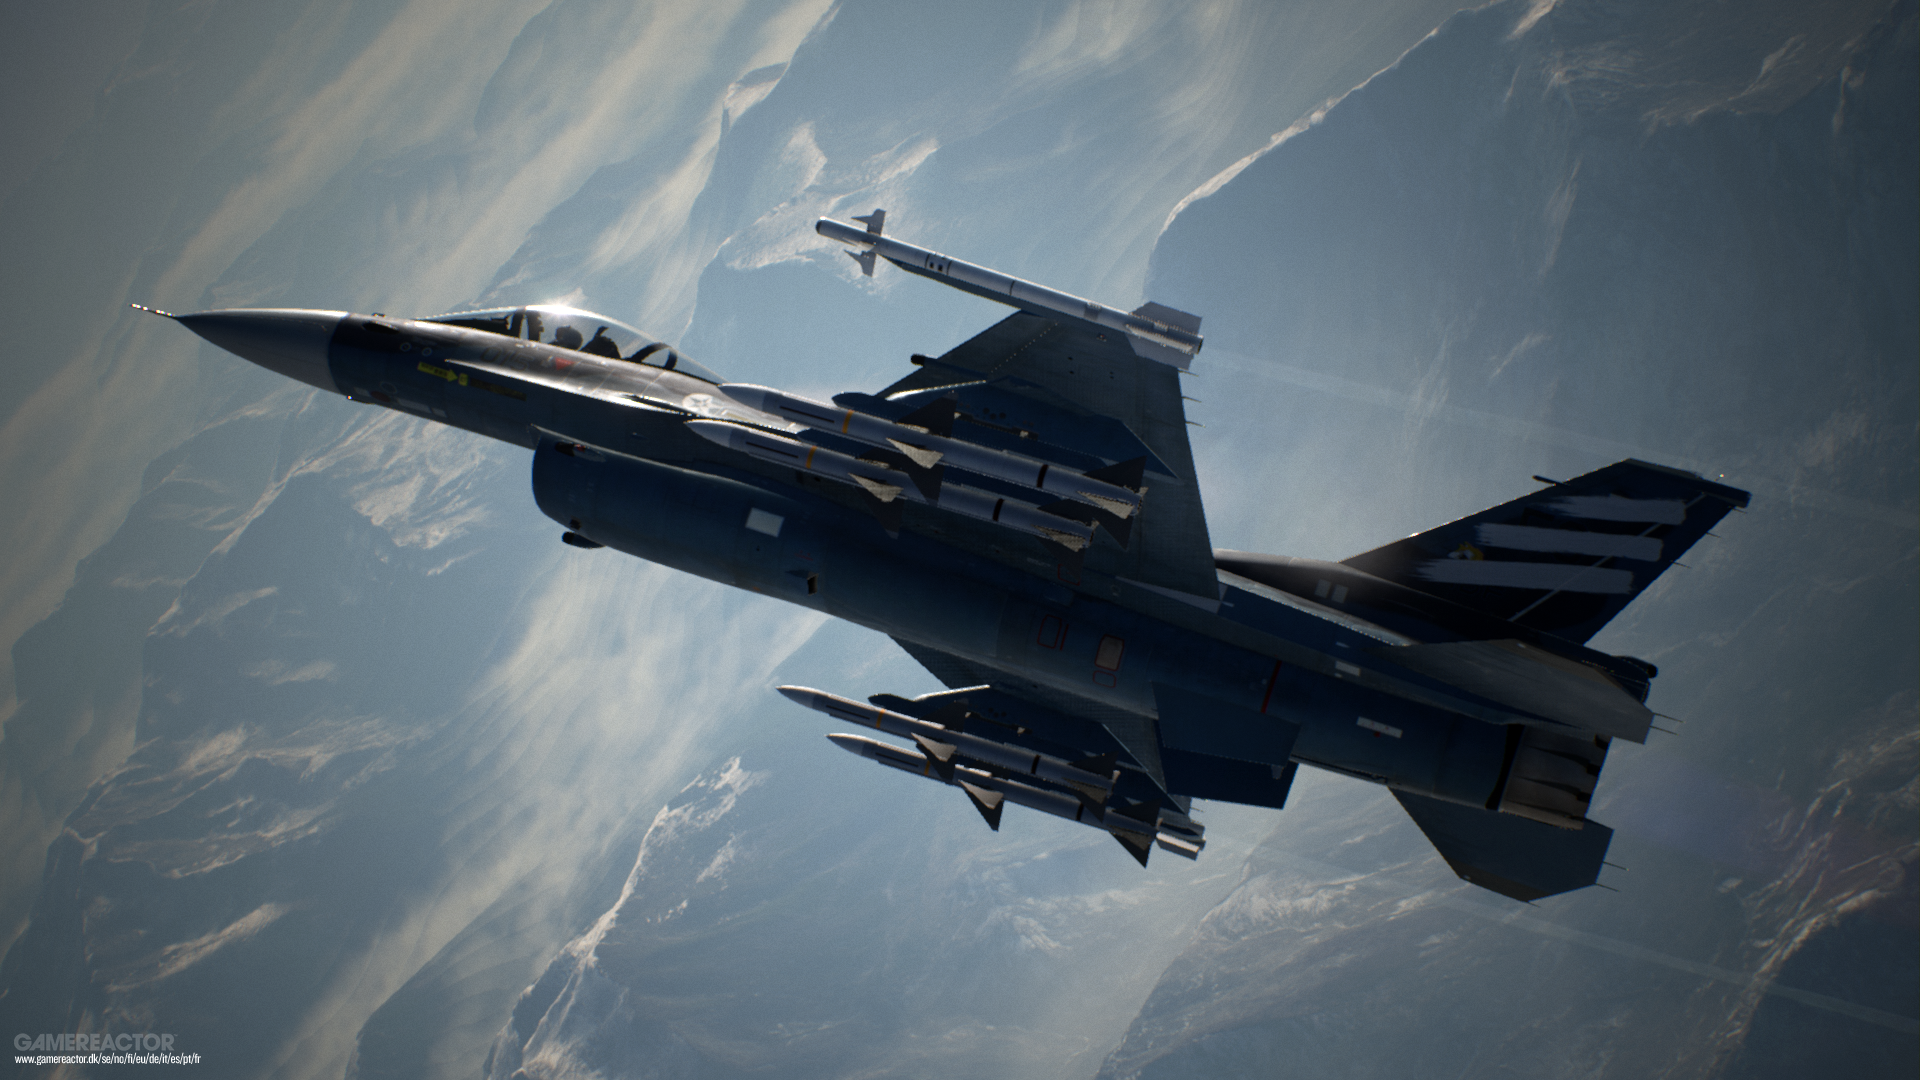 Ace Combat 7: Unknown Skies is native 4K on PC - Ace Combat